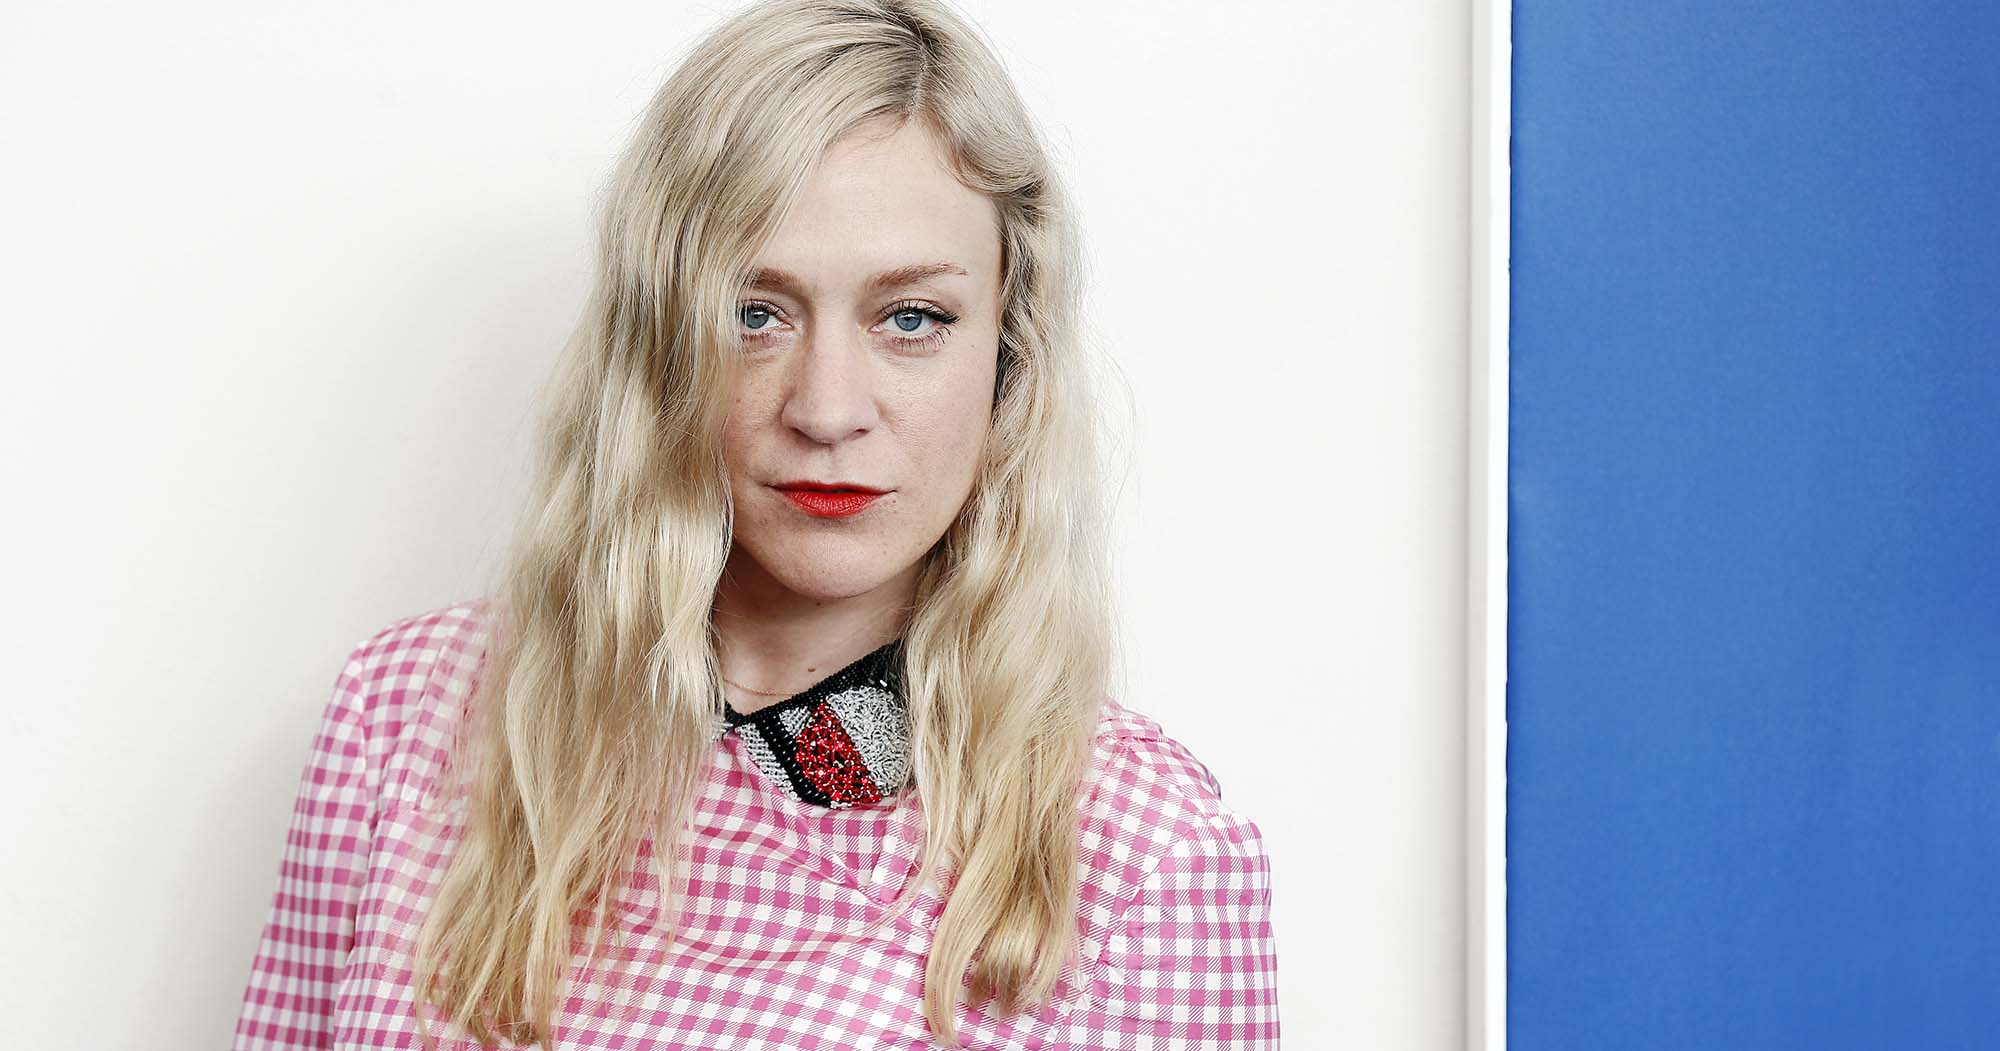 Chloë Sevigny has portrayed weird, wonderful, and sexy roles with mixed results. Here are twelve of her most memorable roles, ranked from worst to best.